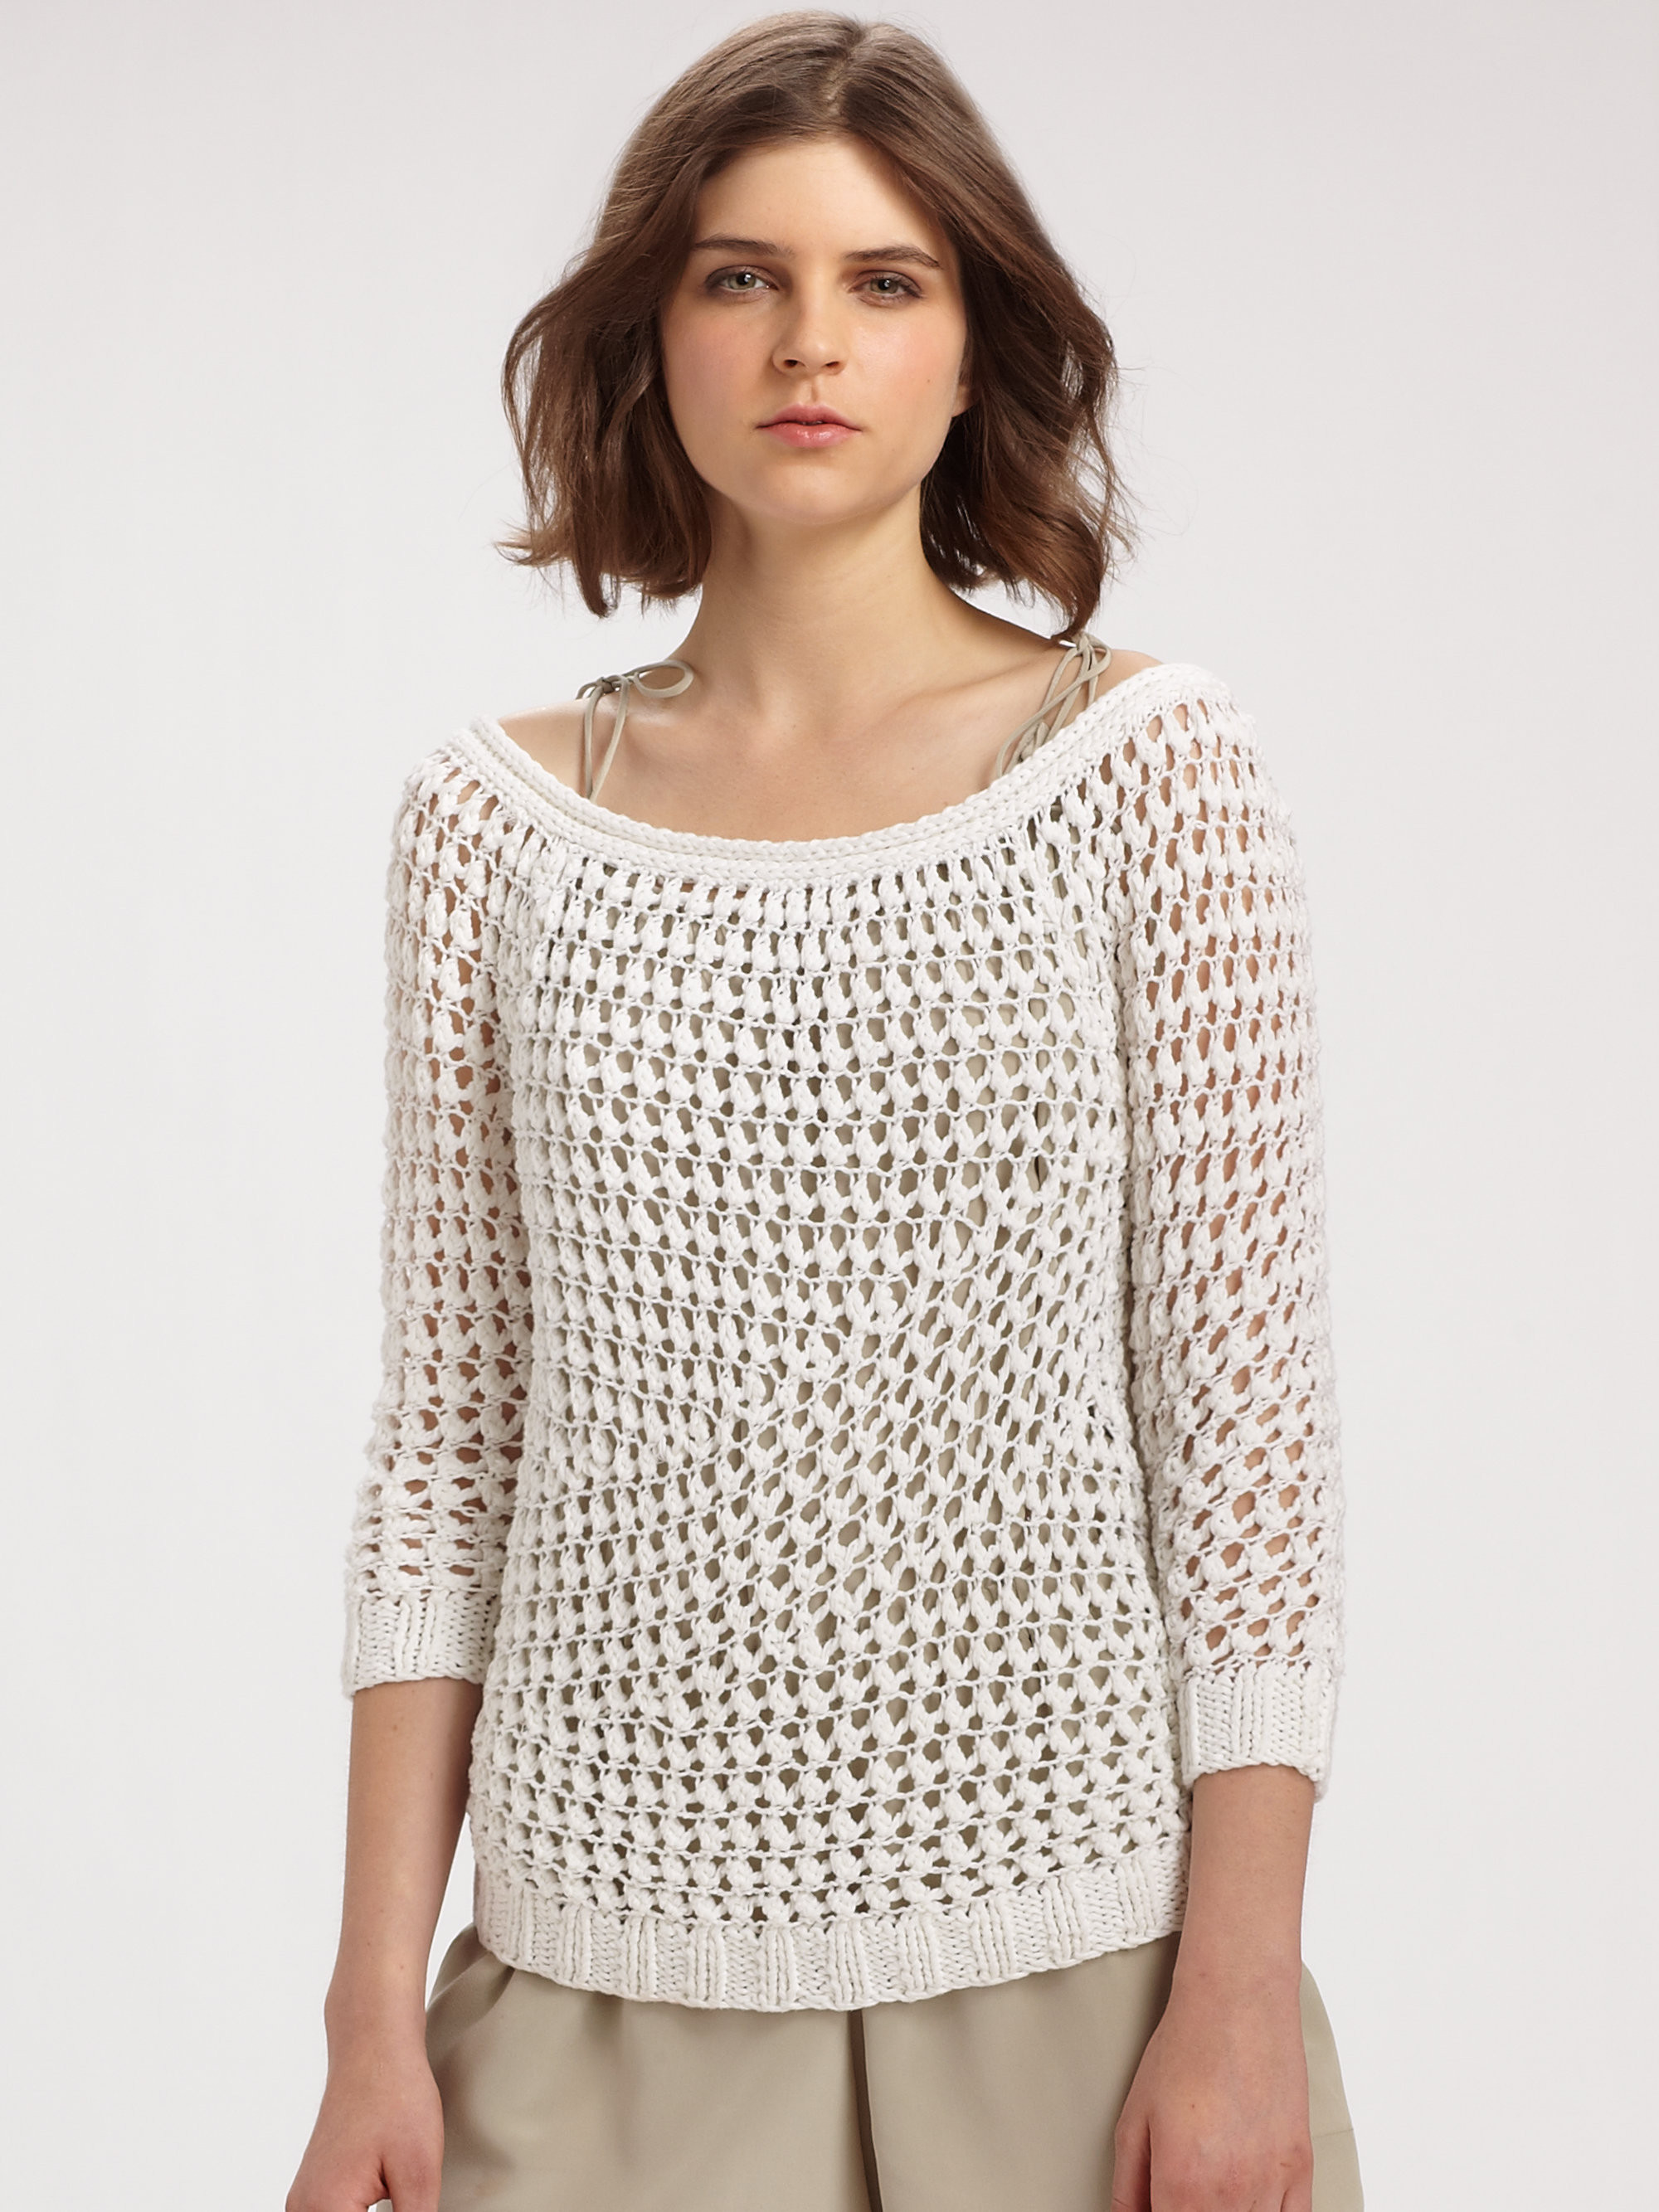 Luxury Lyst theory Nimue Crocheted Sweater In White White Crochet Sweater Of Wonderful 44 Ideas White Crochet Sweater